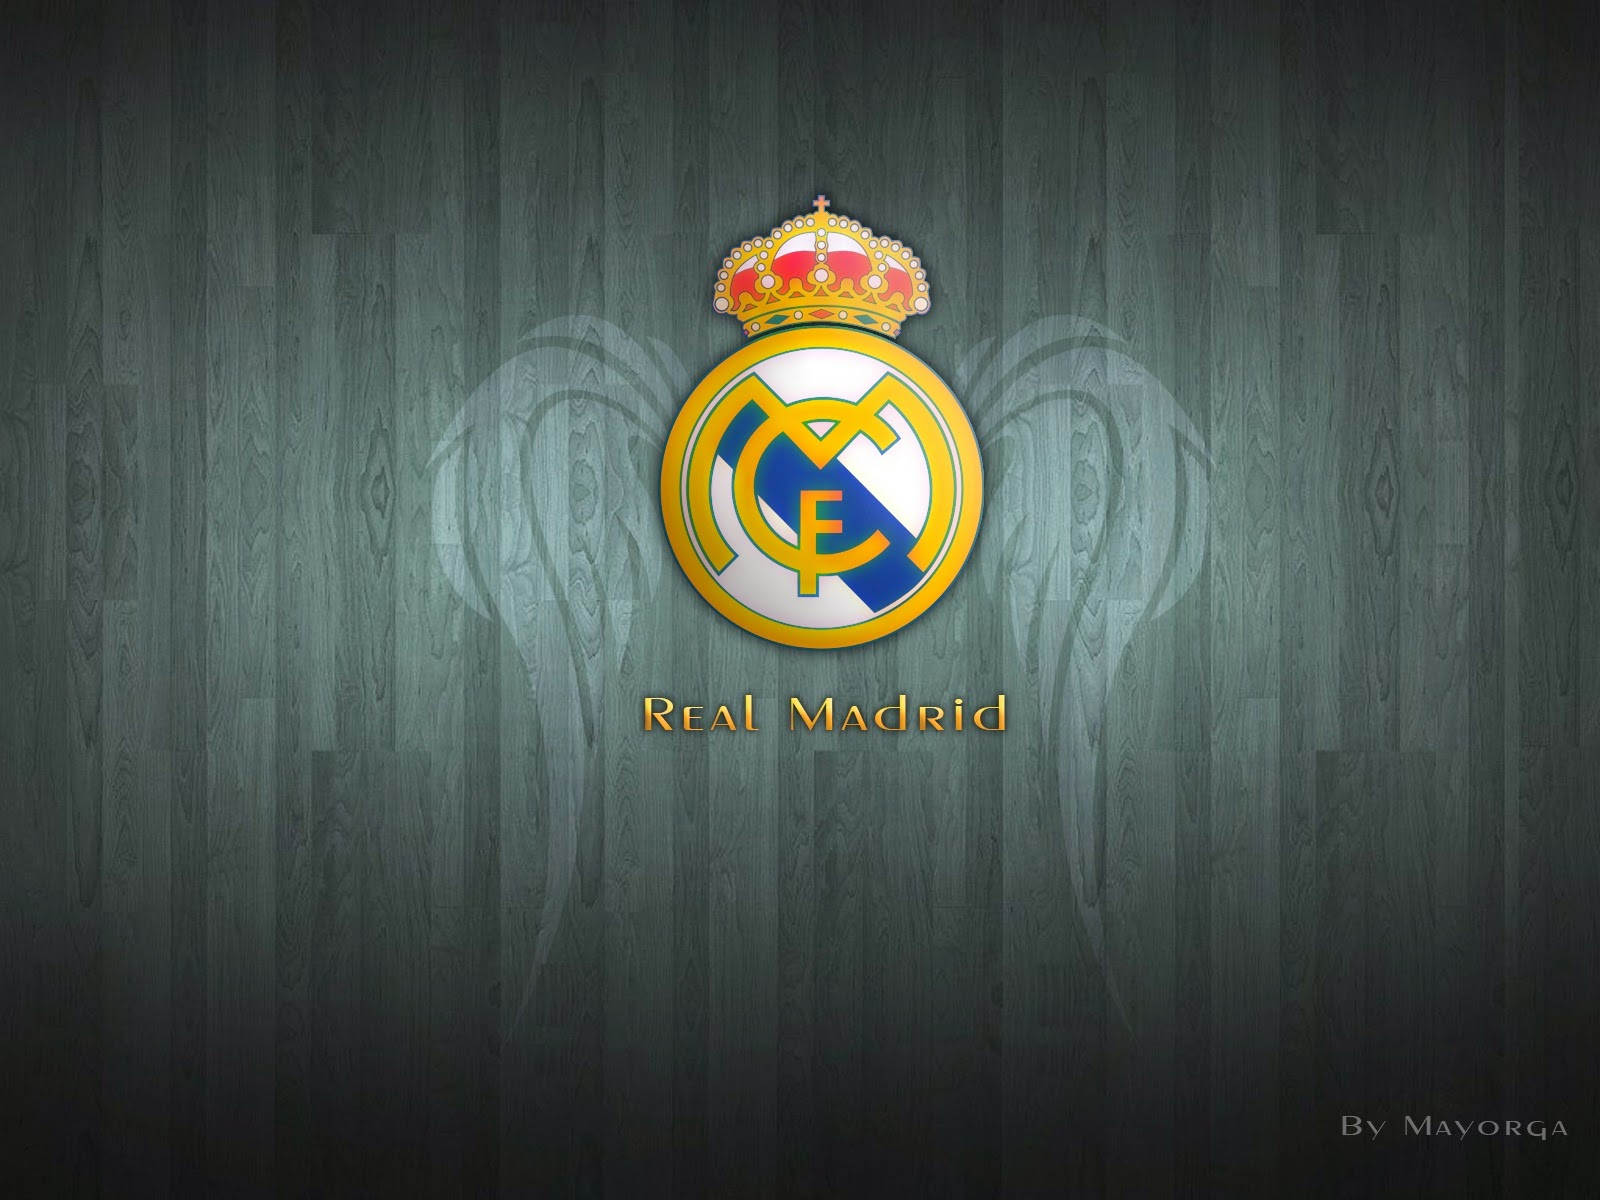 The Fresh Wallpaper Real Madrid Club Wallpaper